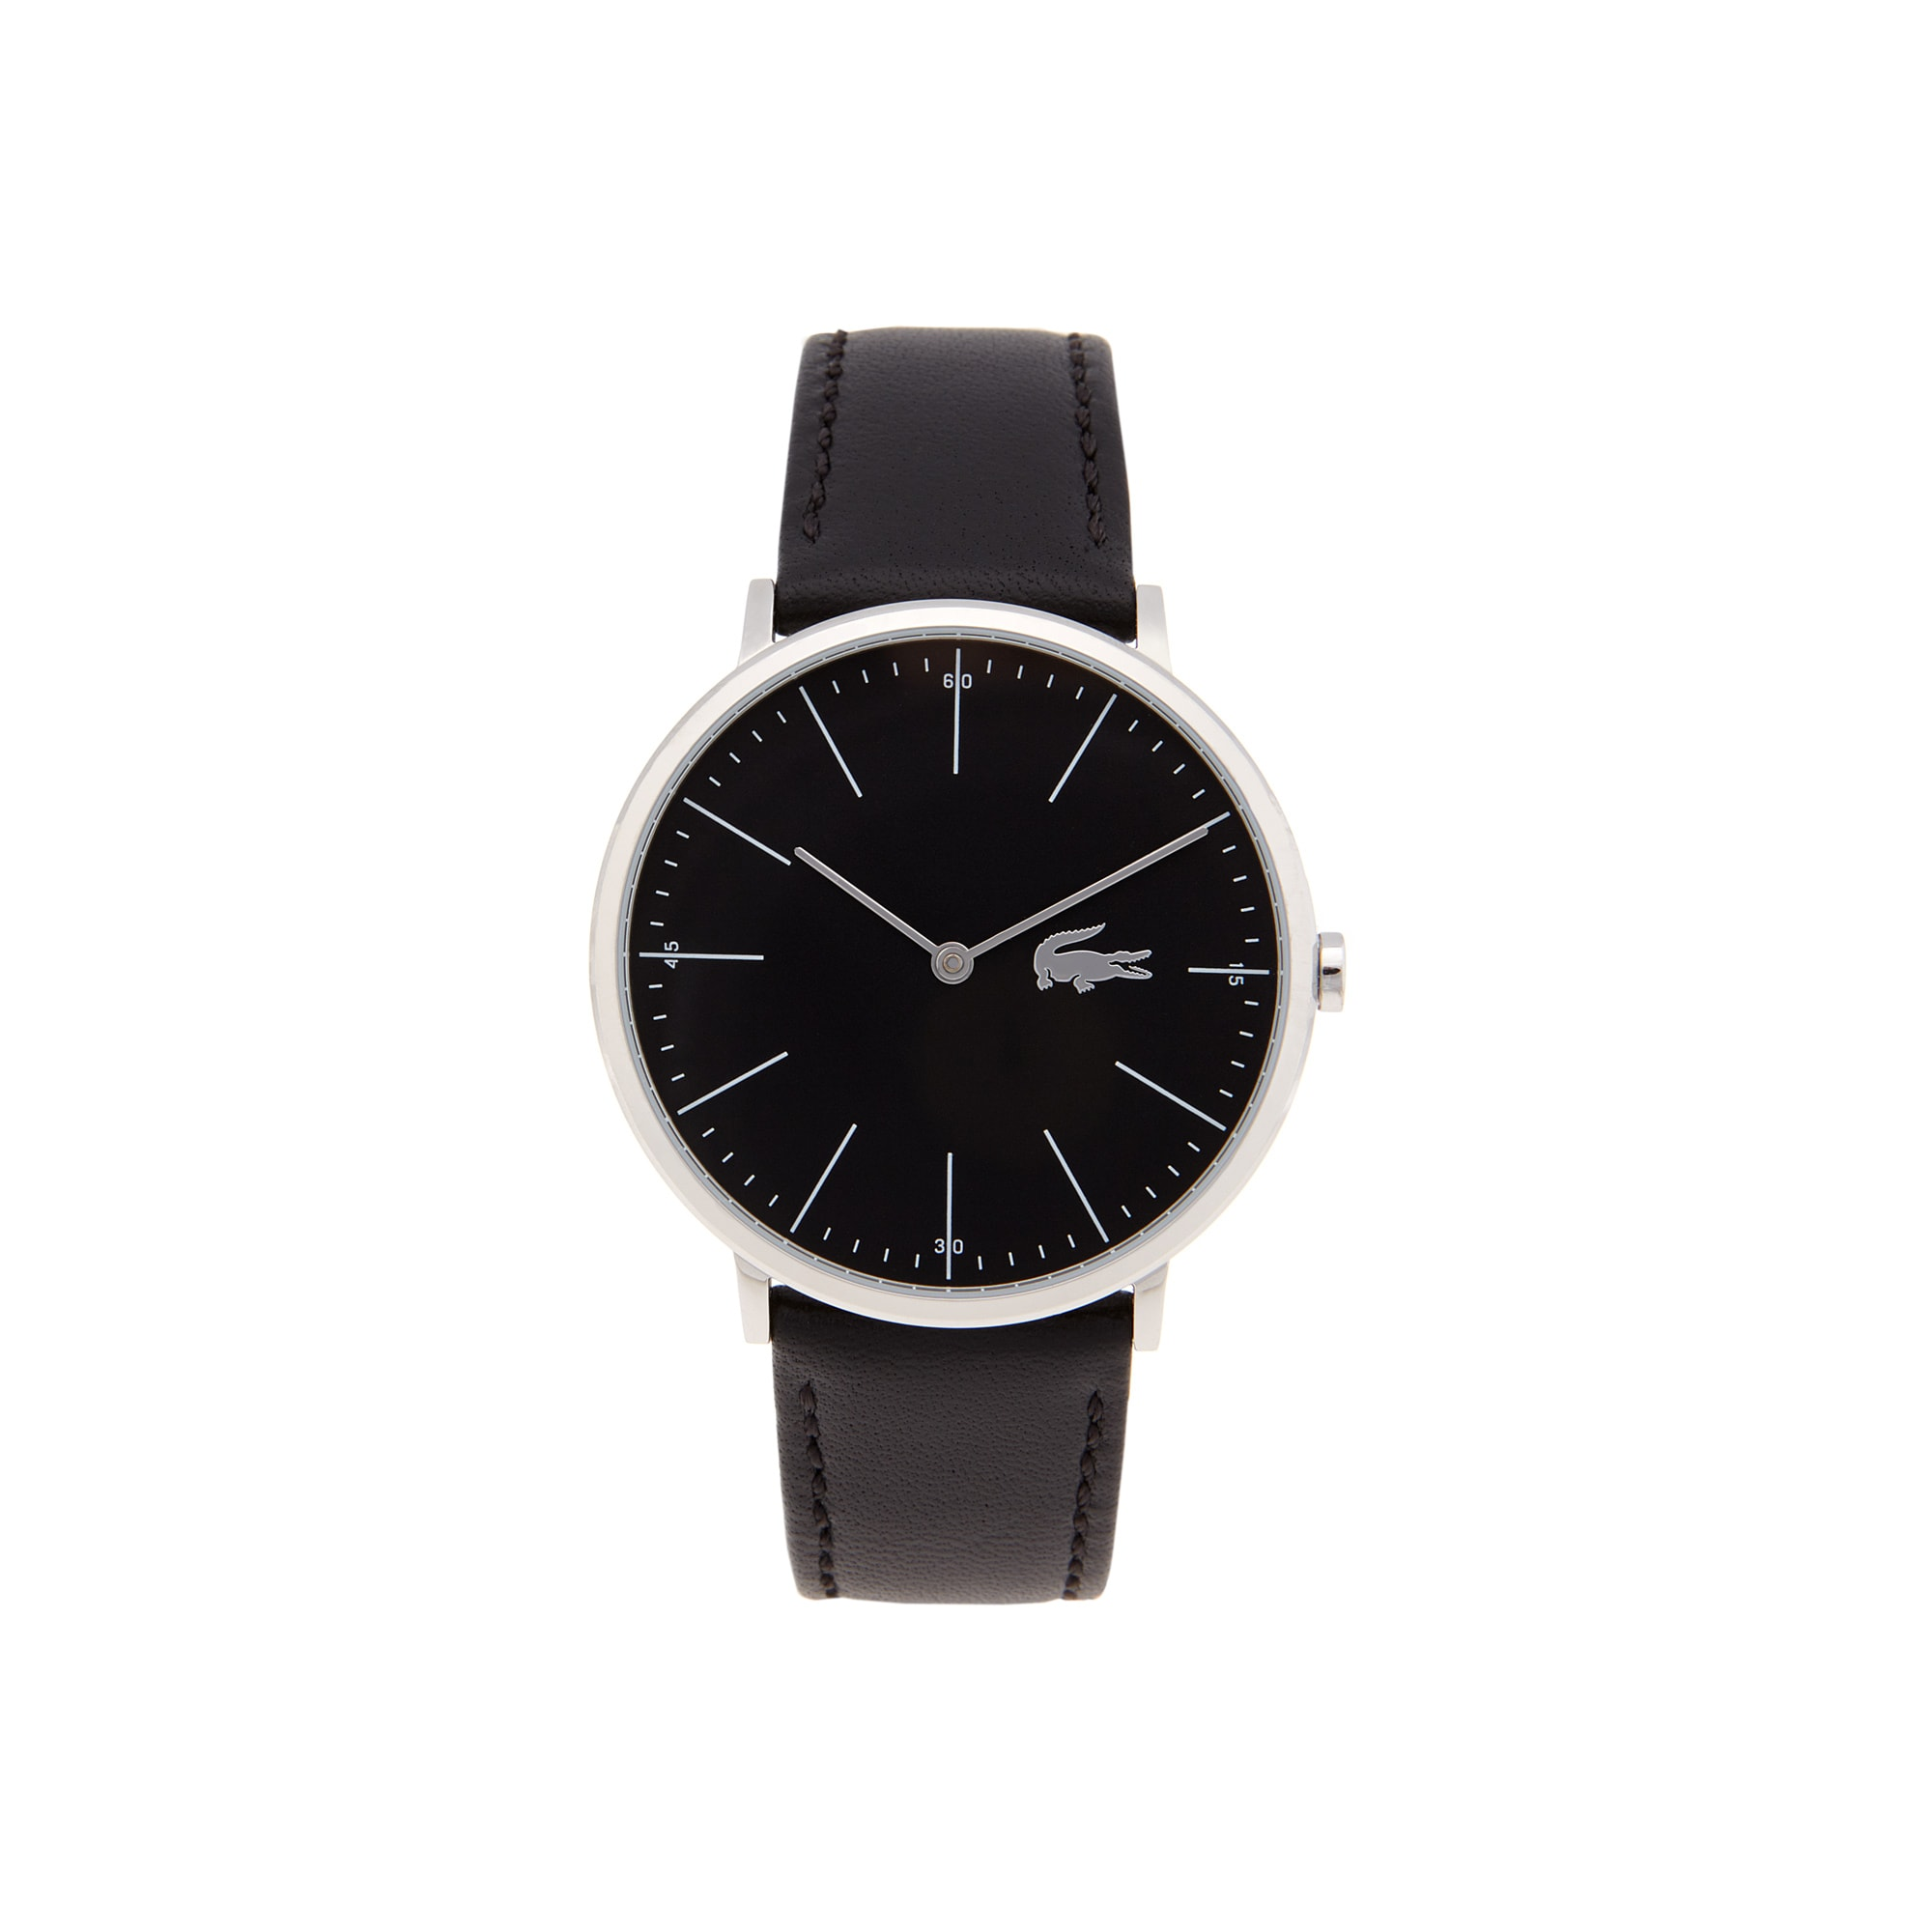 Lacoste Moon Watch Extra-slim black dial black leather strap